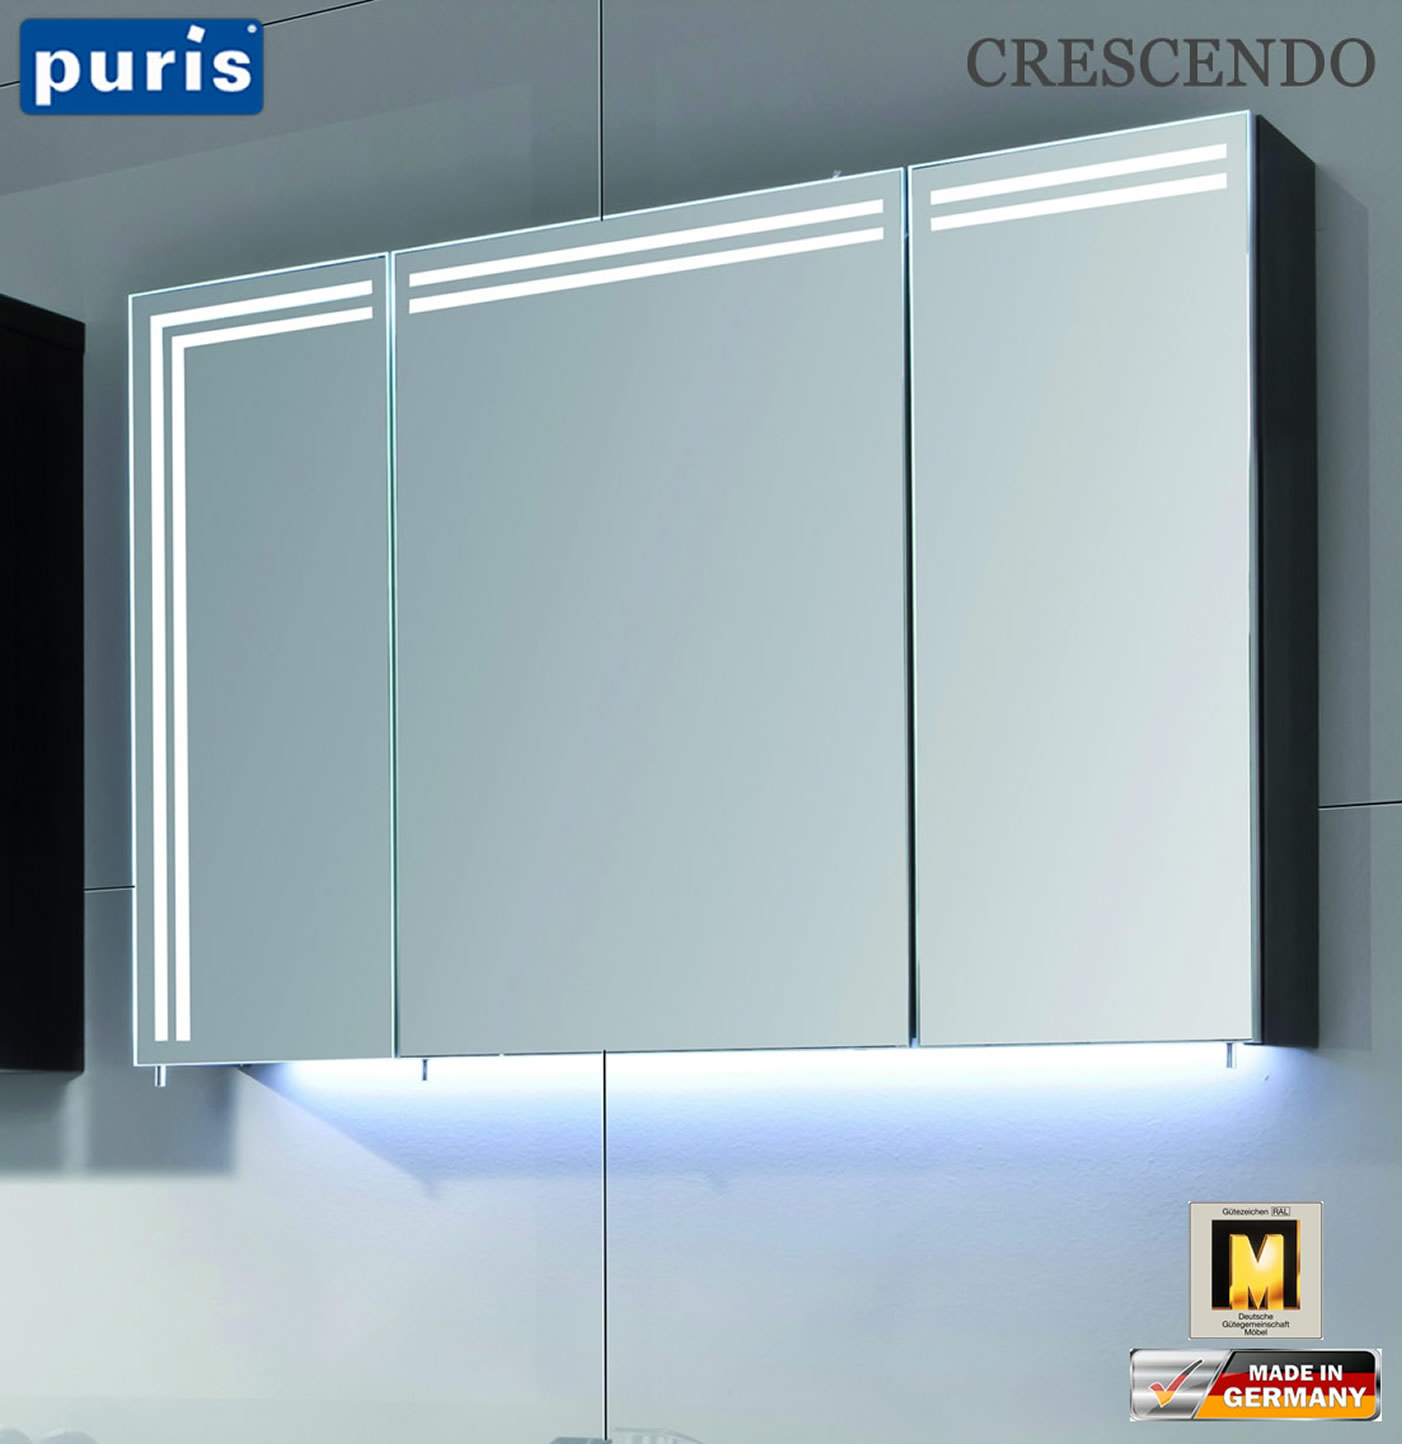 Puris Crescendo LED Spiegelschrank 90 Cm   S2A439R23